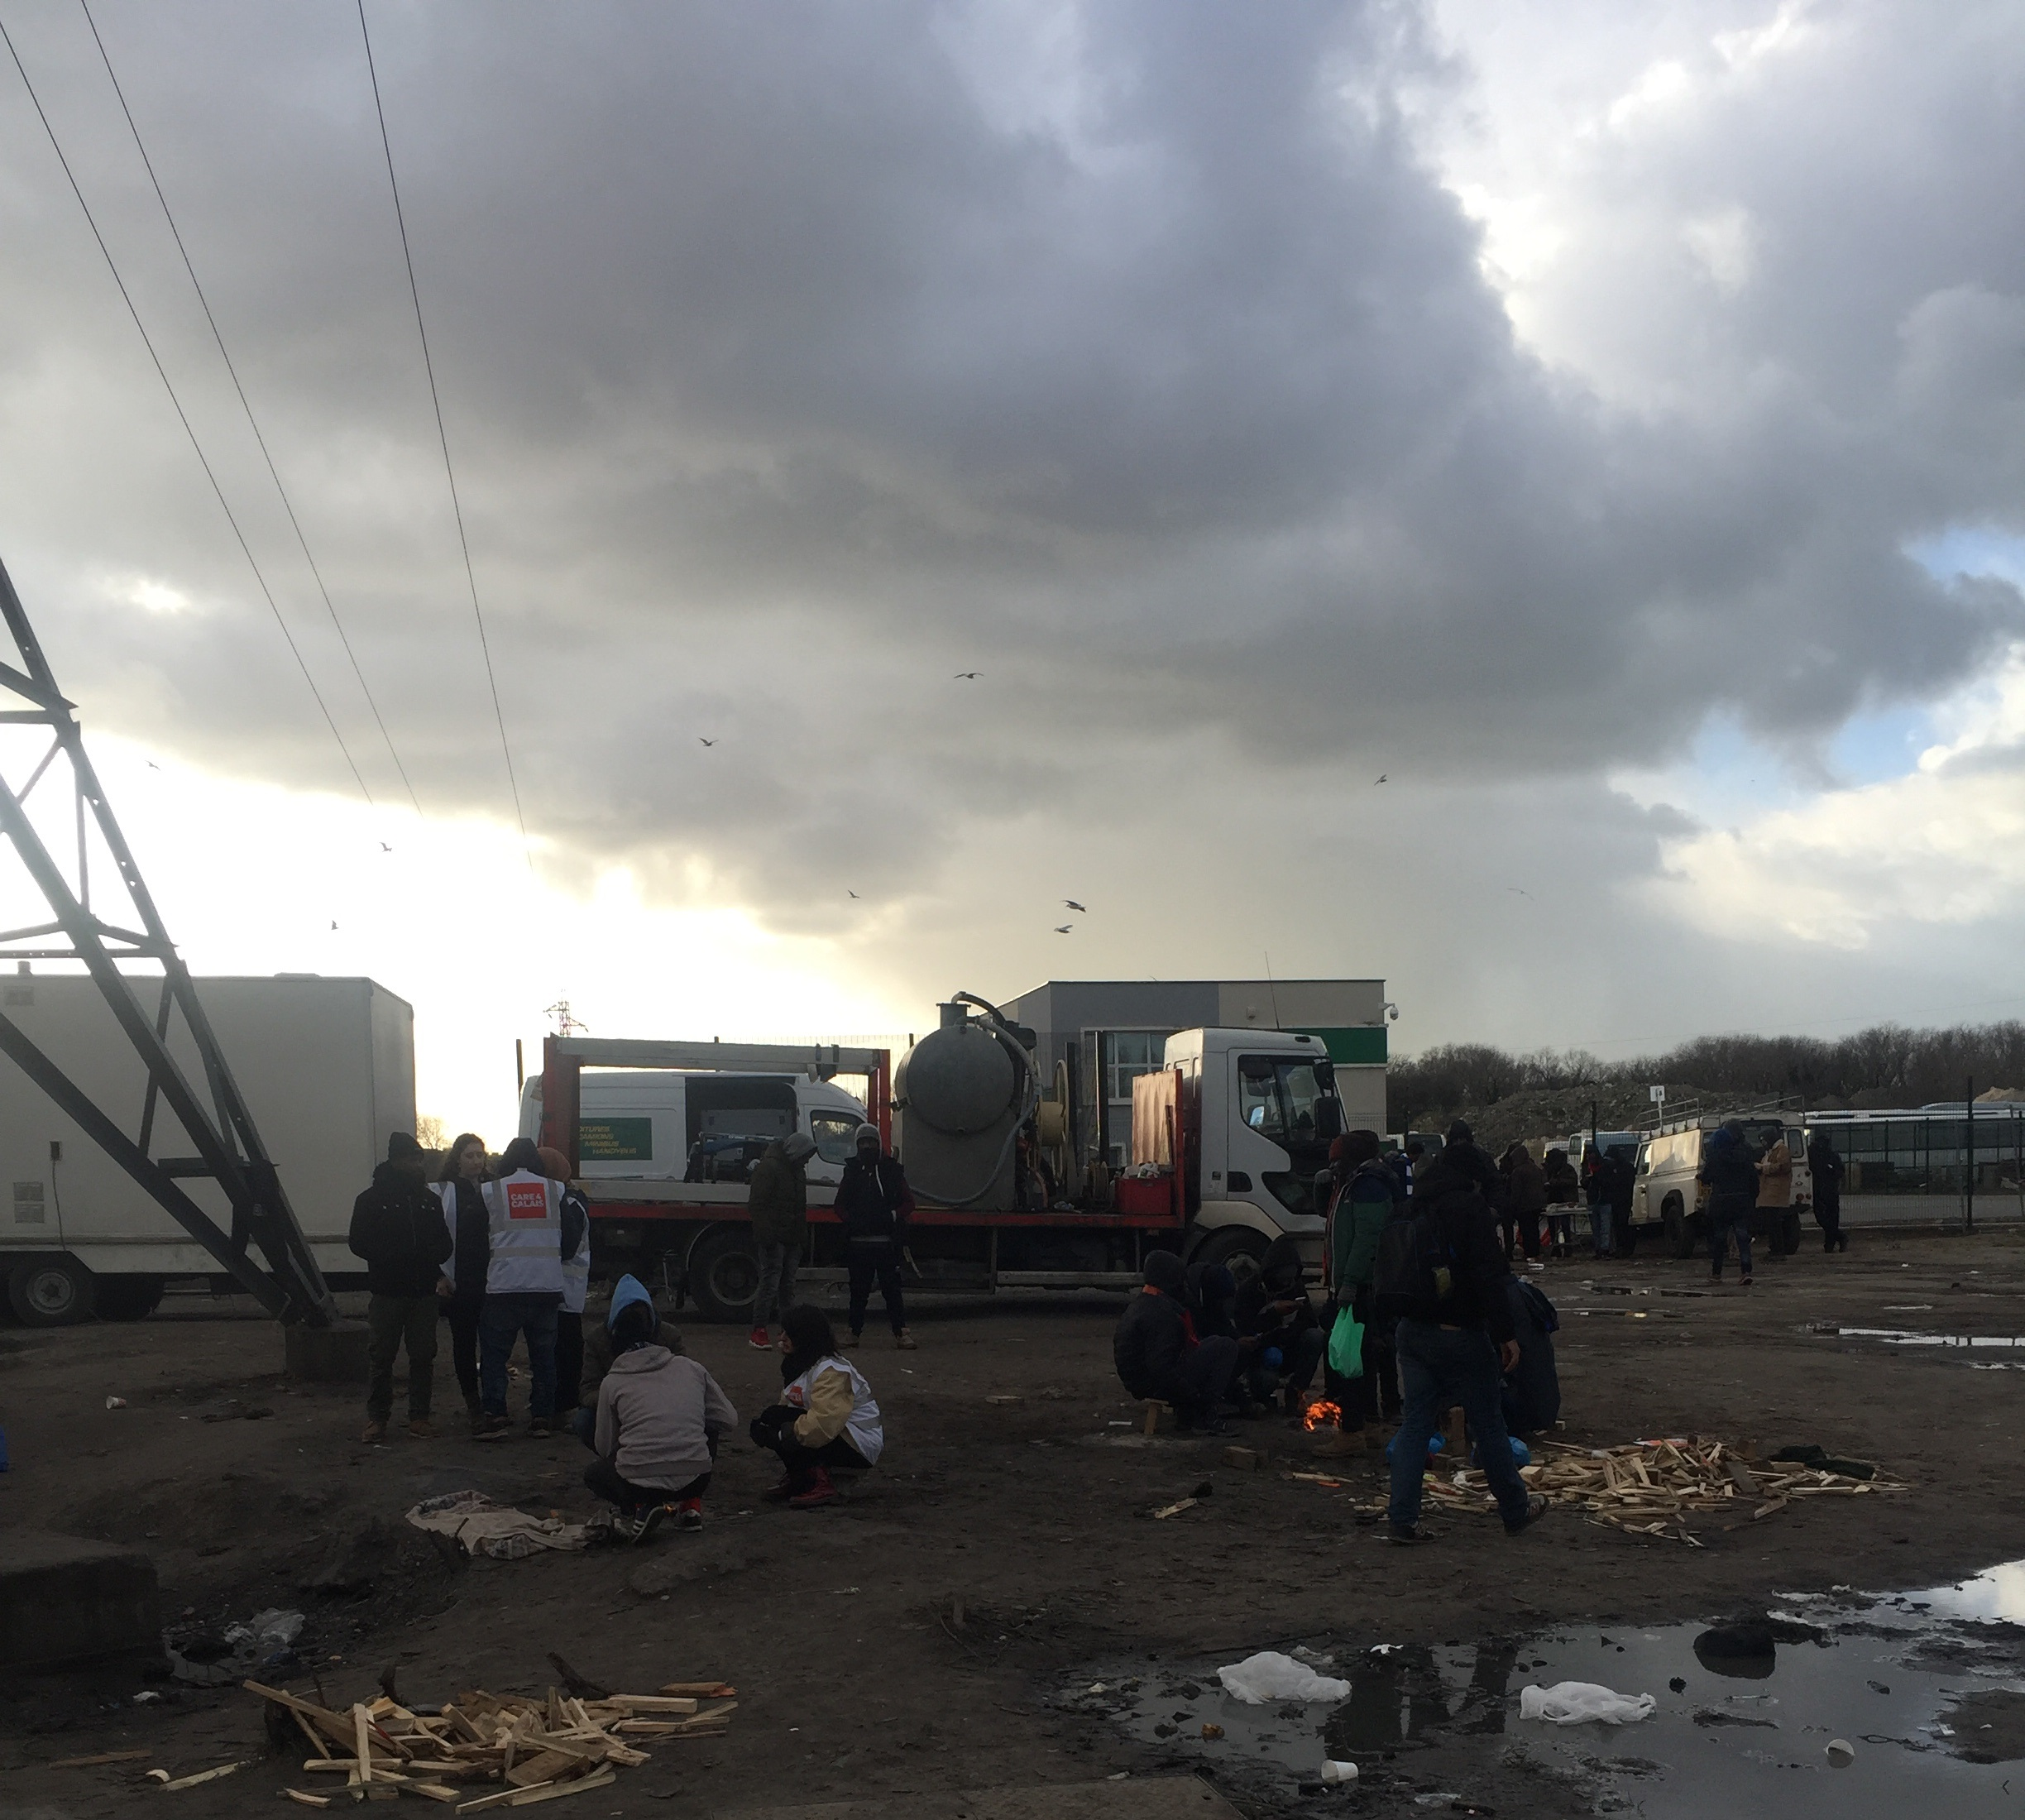 Visiting the refugee camps in Calais